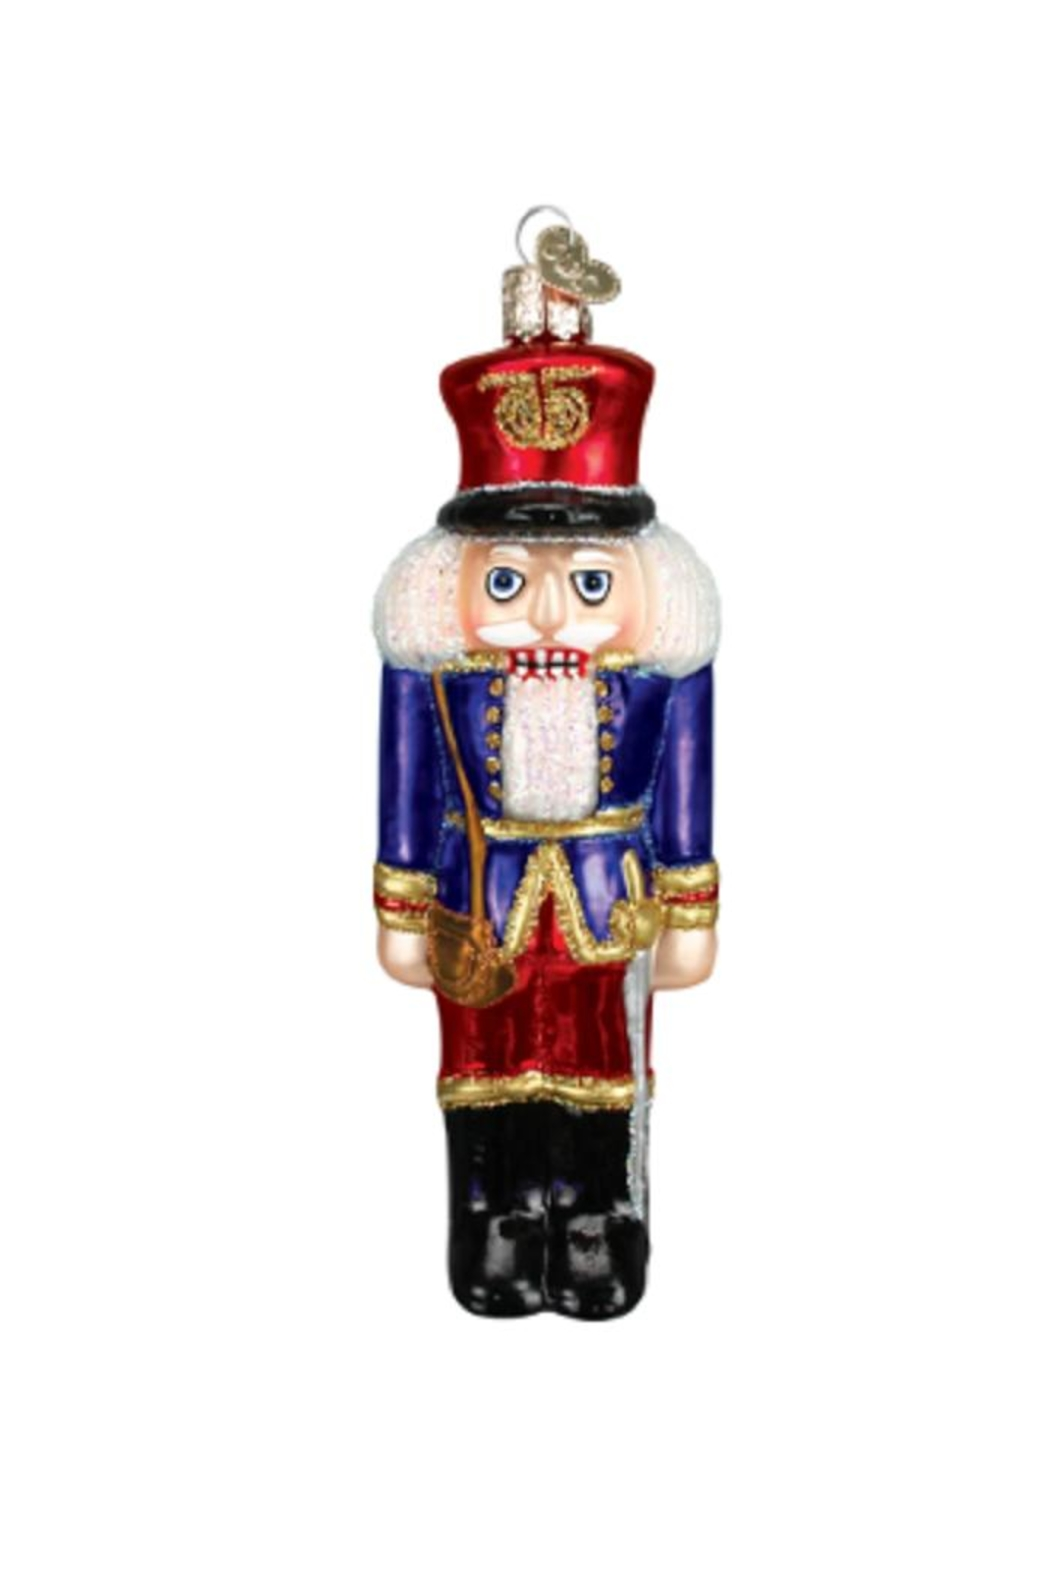 Old World Christmas Soldier Nutcracker Ornament - Main Image